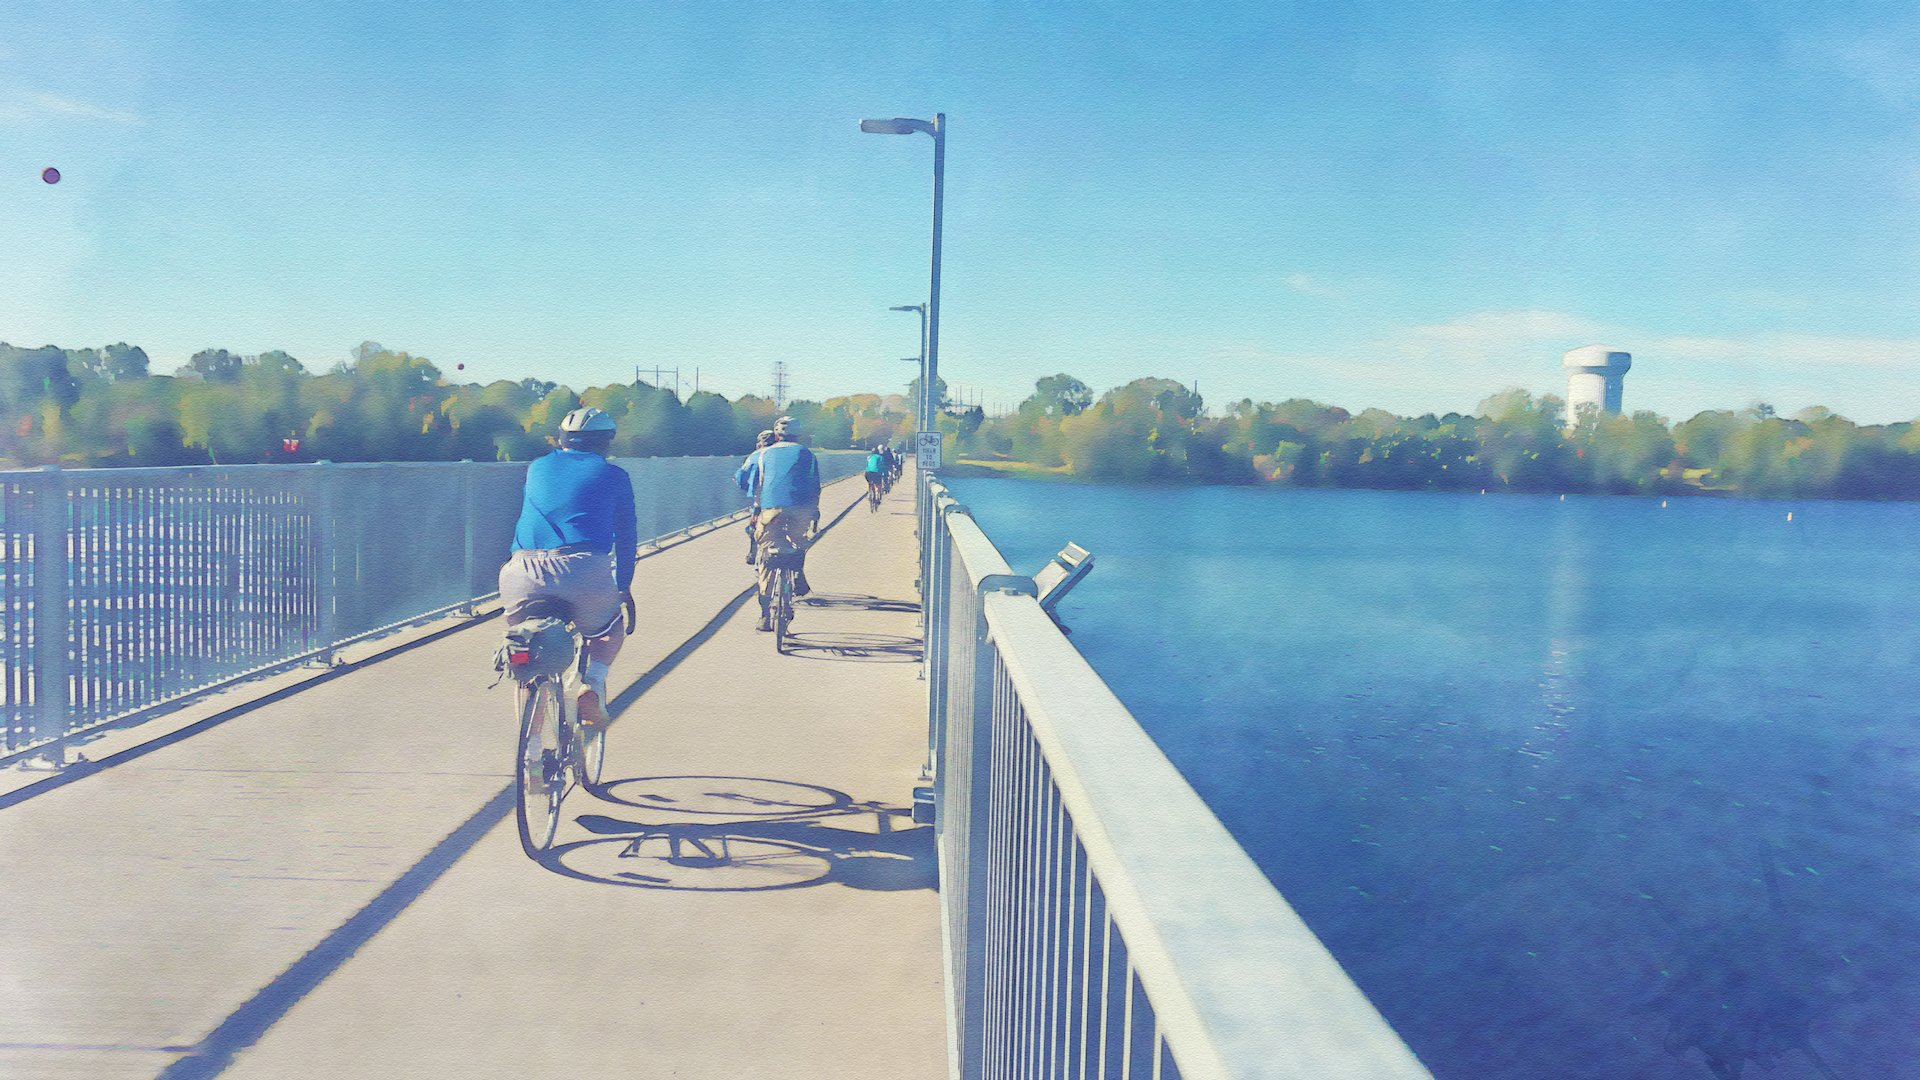 Access some of the nation's best bike trails! Cross the Coon Rapids Dam, hop on the picturesque MRT (which traverses the entire Mississippi!), or ride trails all the way downtown.